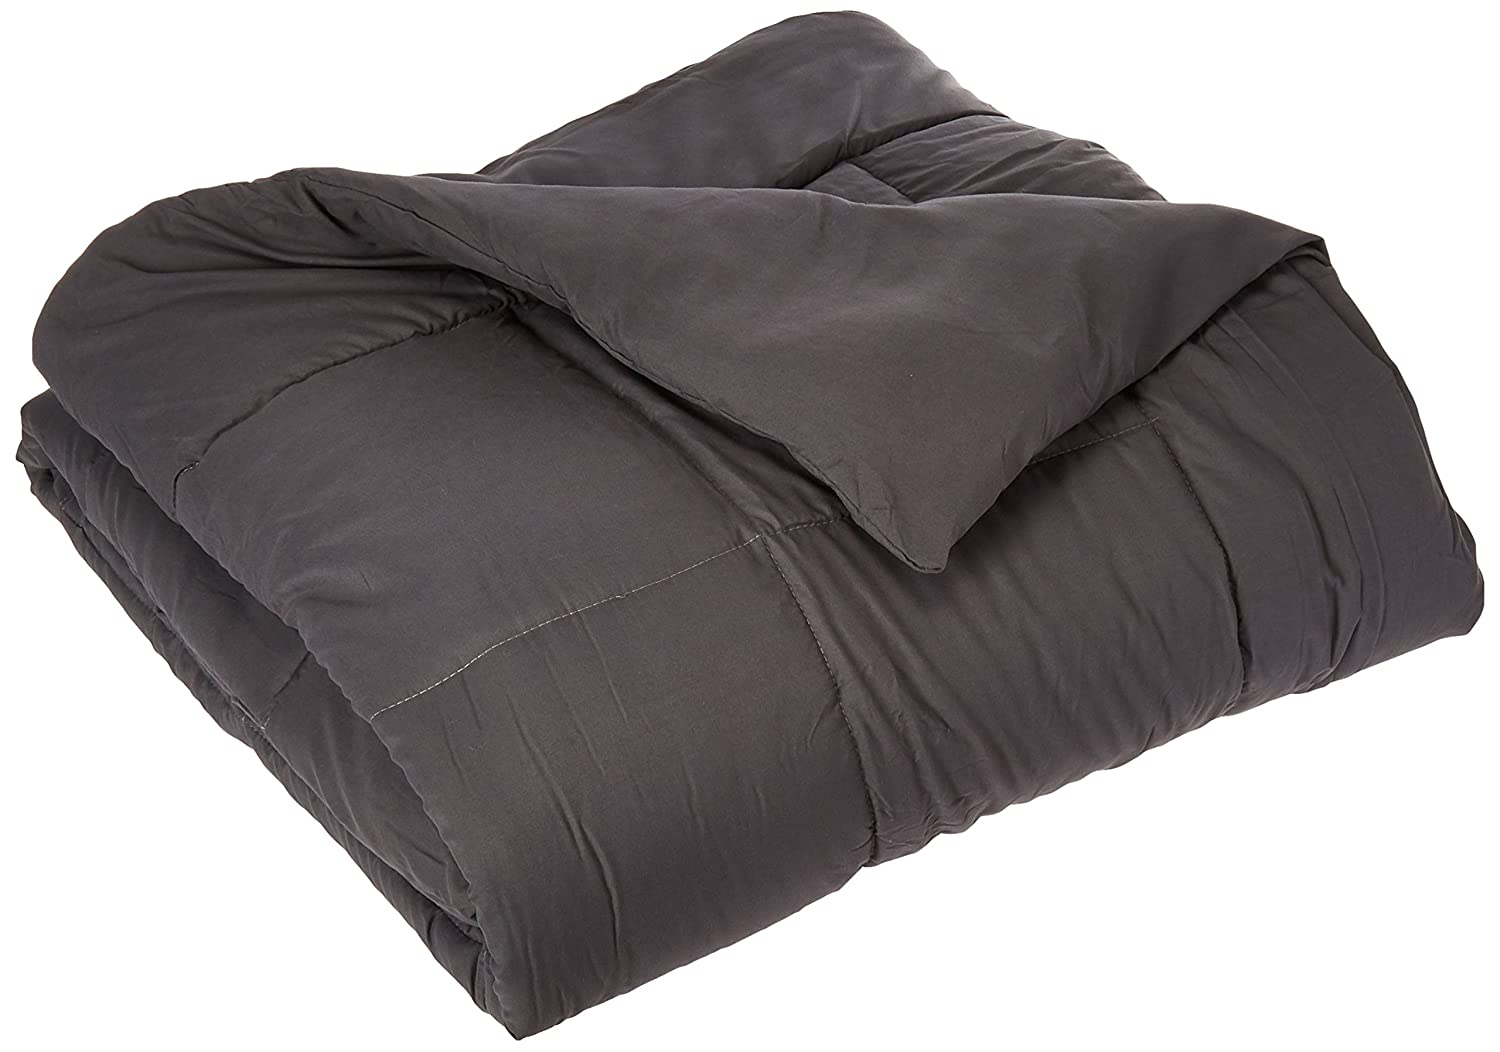 Elegant Comfort Luxury Down Alternative Over-Filled Comforter/Duvet Cover Insert Hypoallergenic, Twin, Black 36RW- Black Comforter Twin